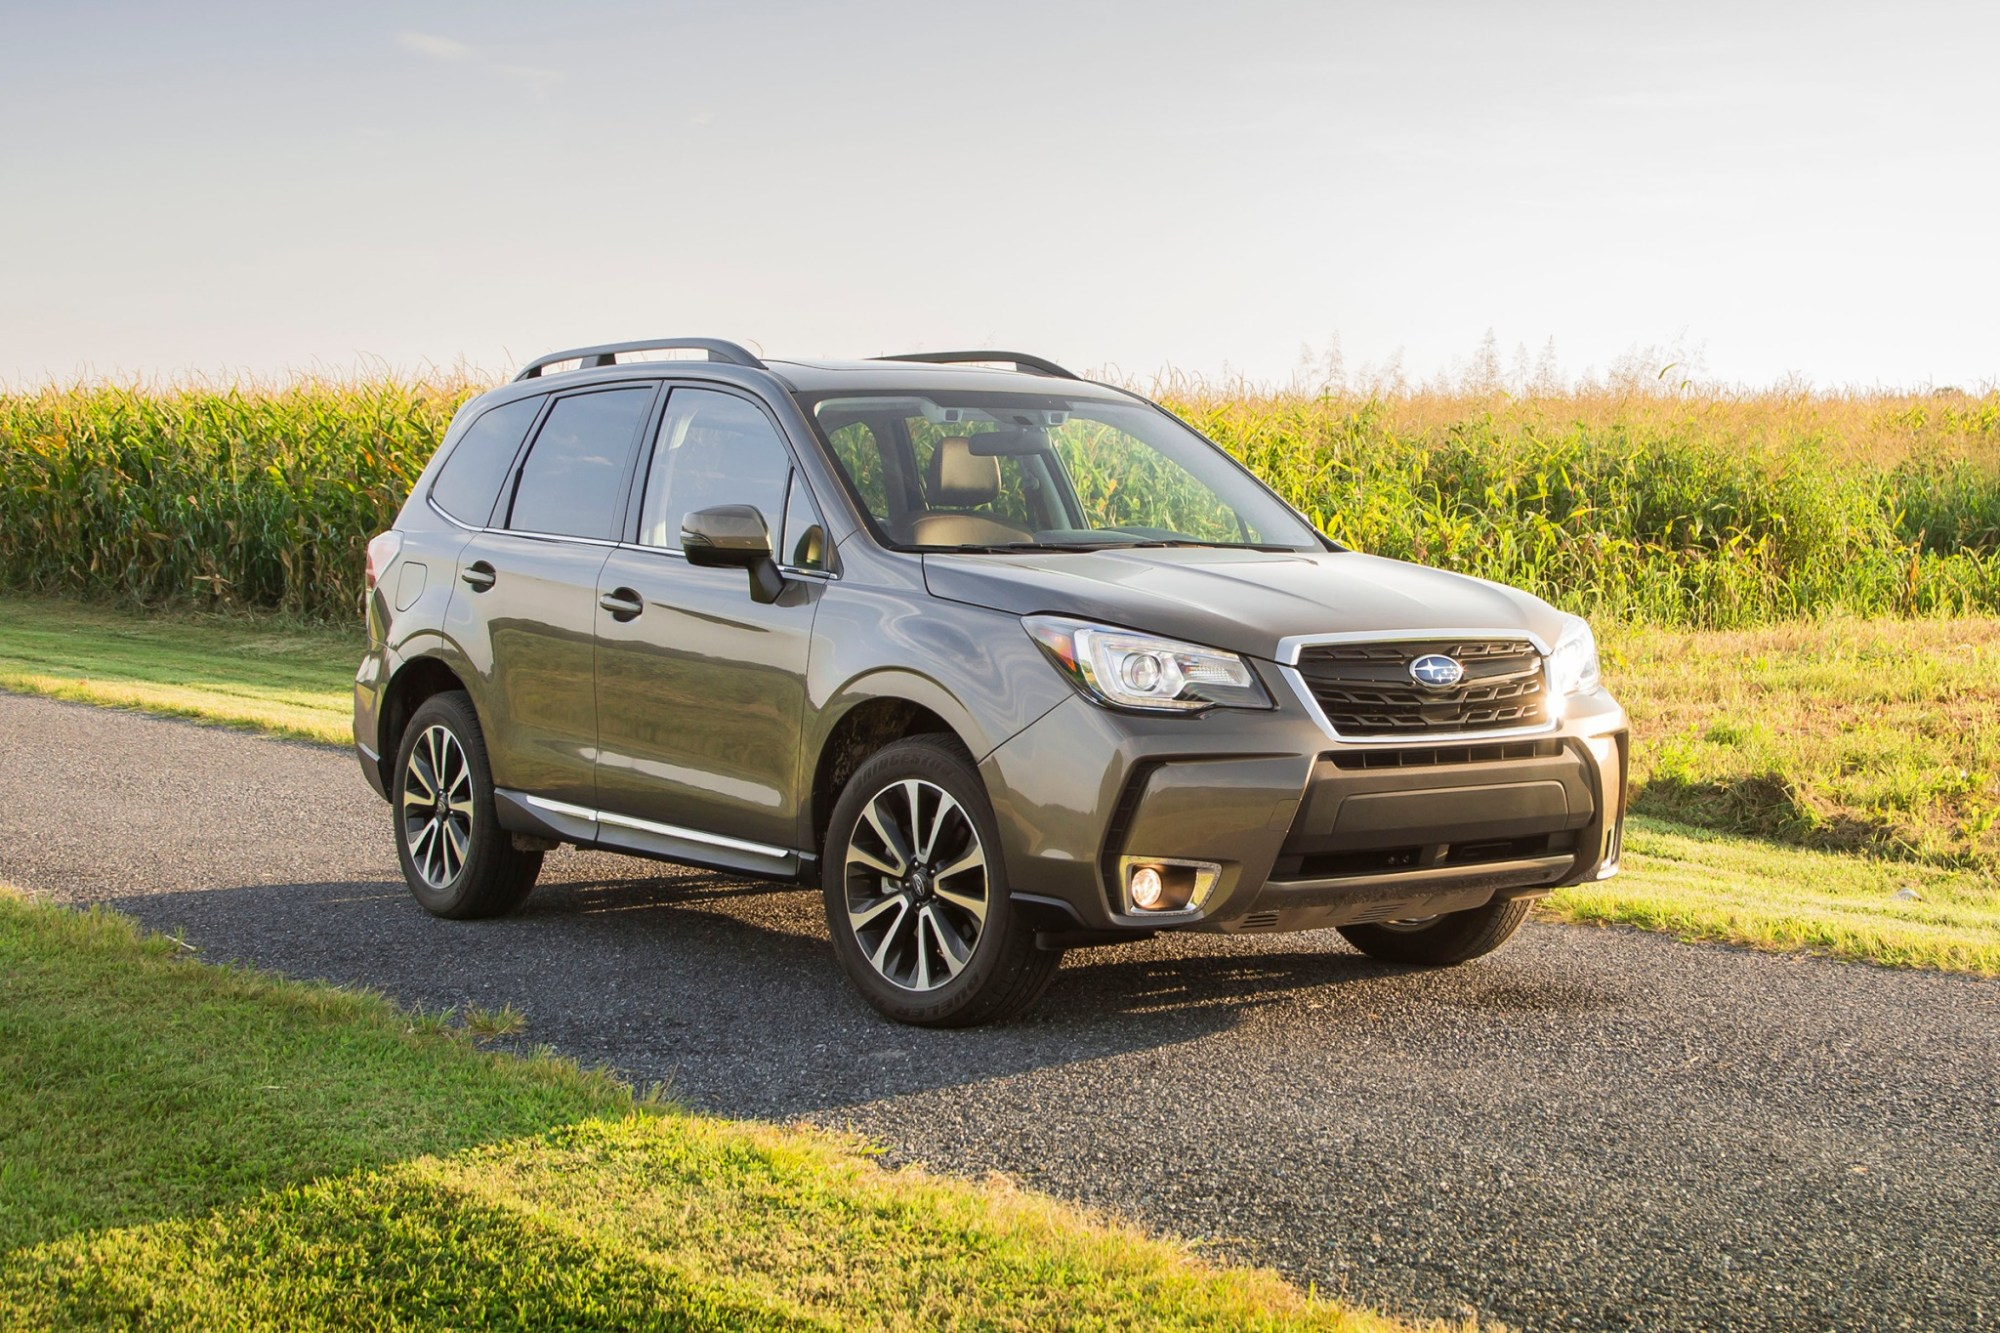 hight resolution of 2017 subaru forester 4dr suv 20xt touring fq oem 3 2048